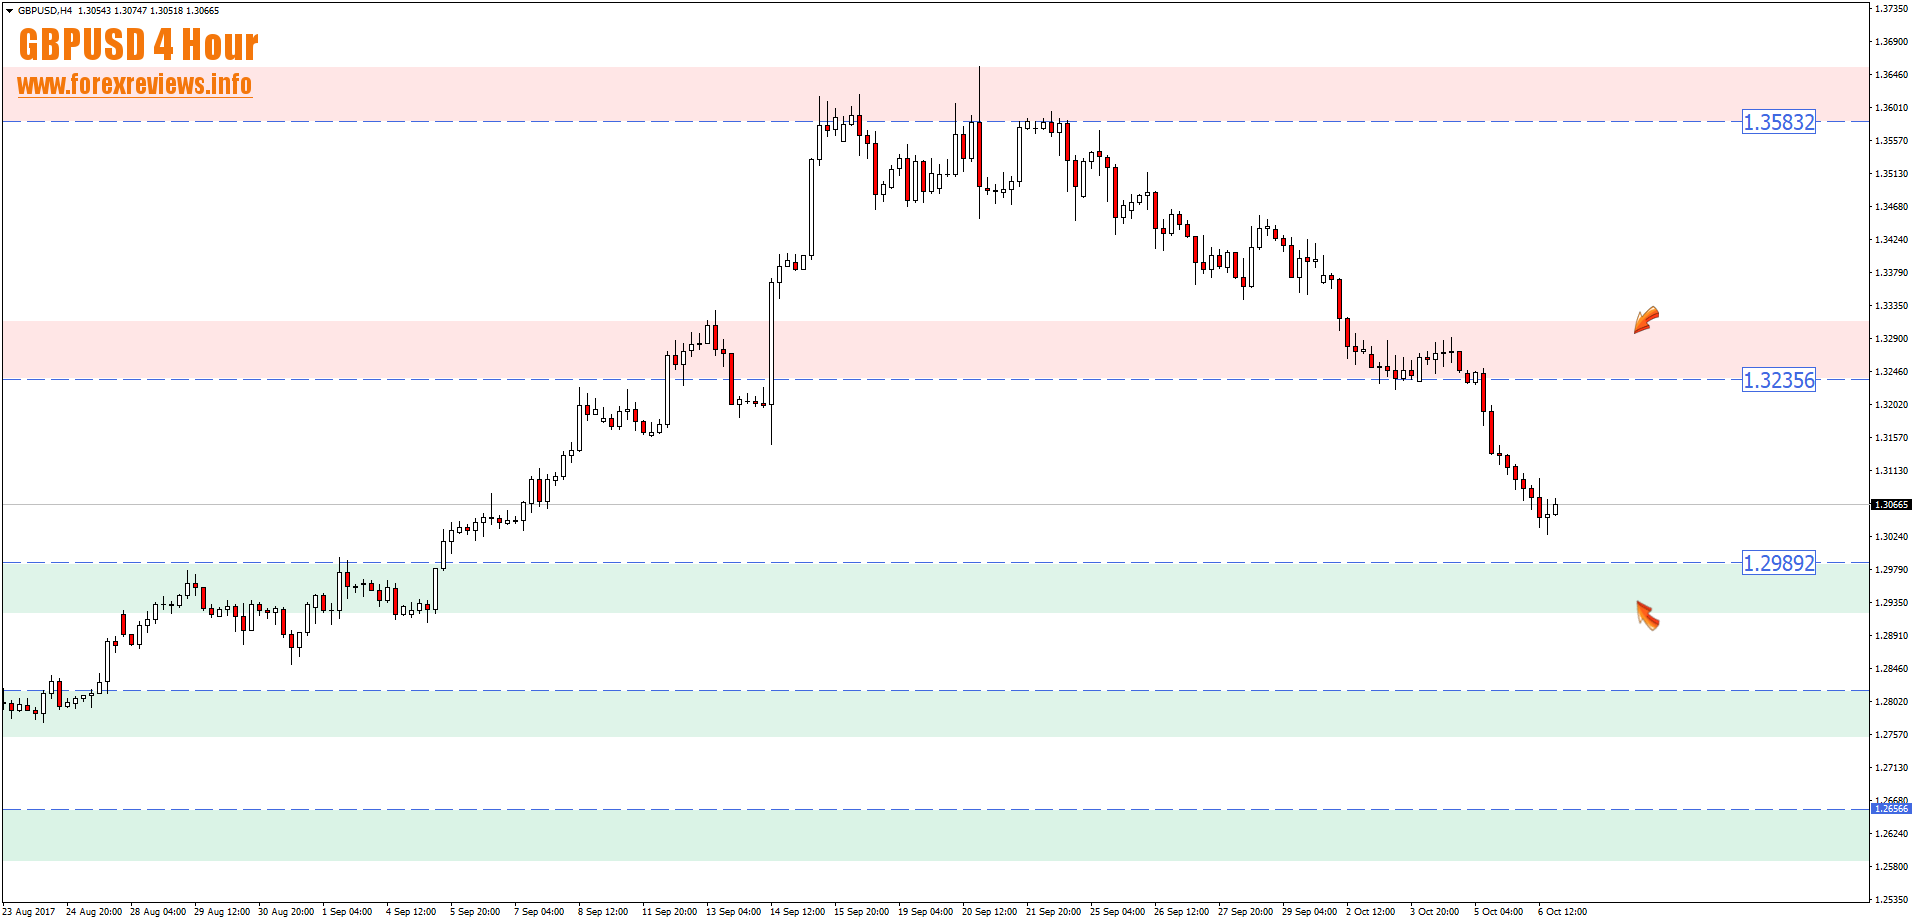 gbpusd 4 hour opportunity zones